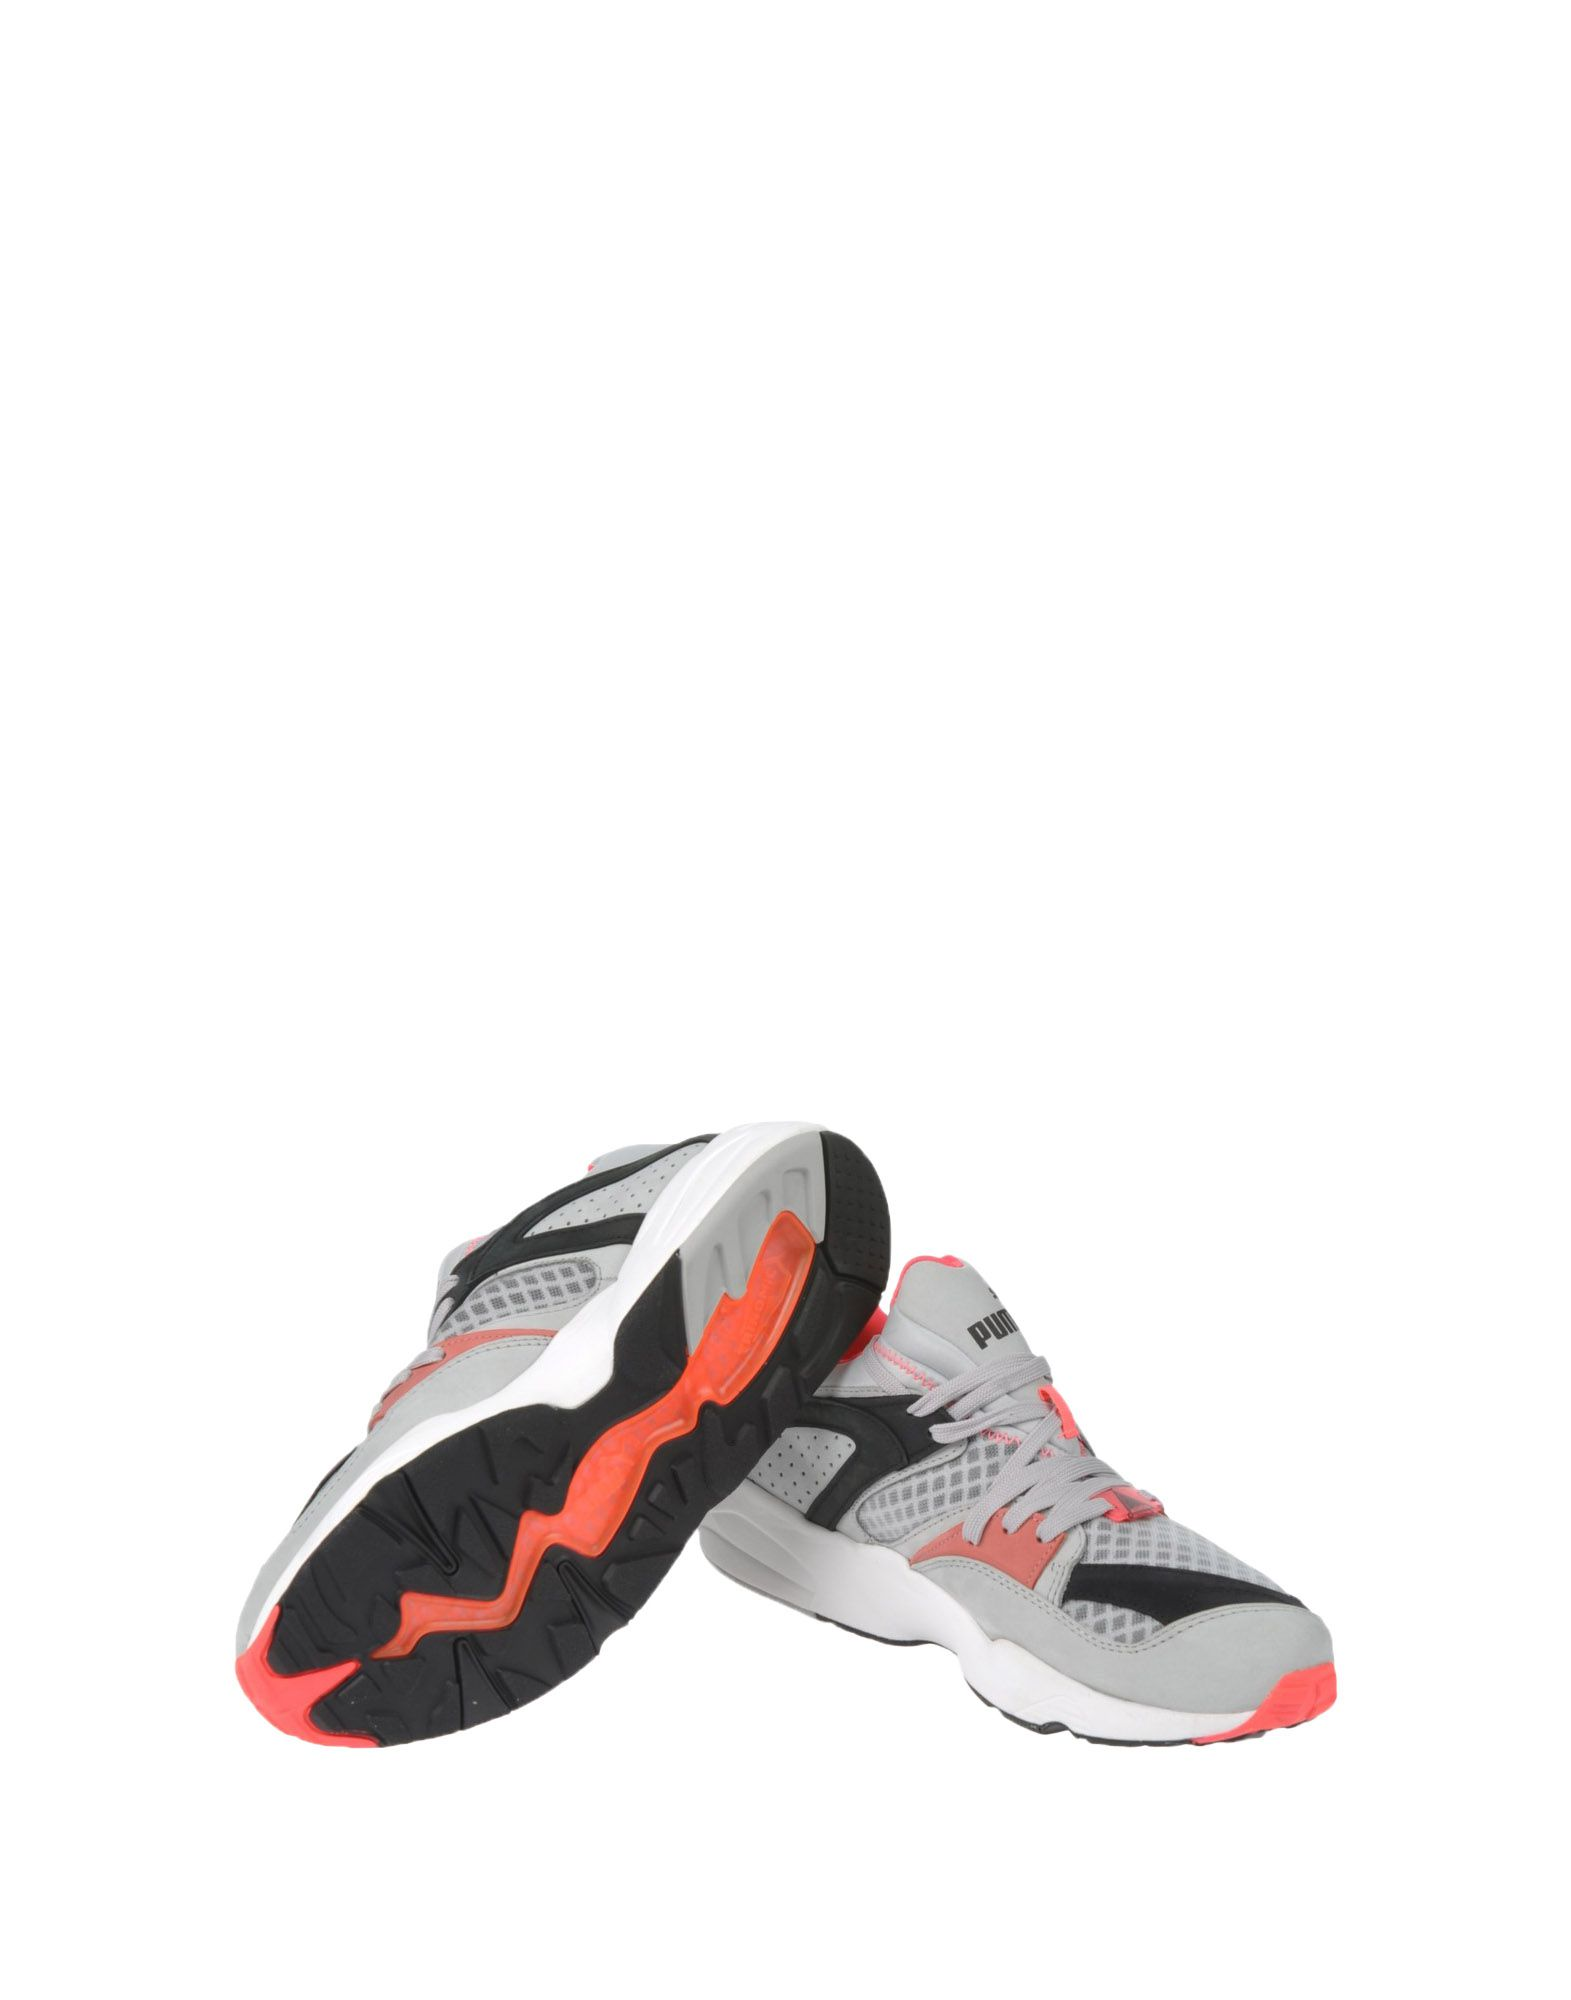 Sneakers Puma Blaze Of Glory Trinomic Crkl - Homme - Sneakers Puma sur